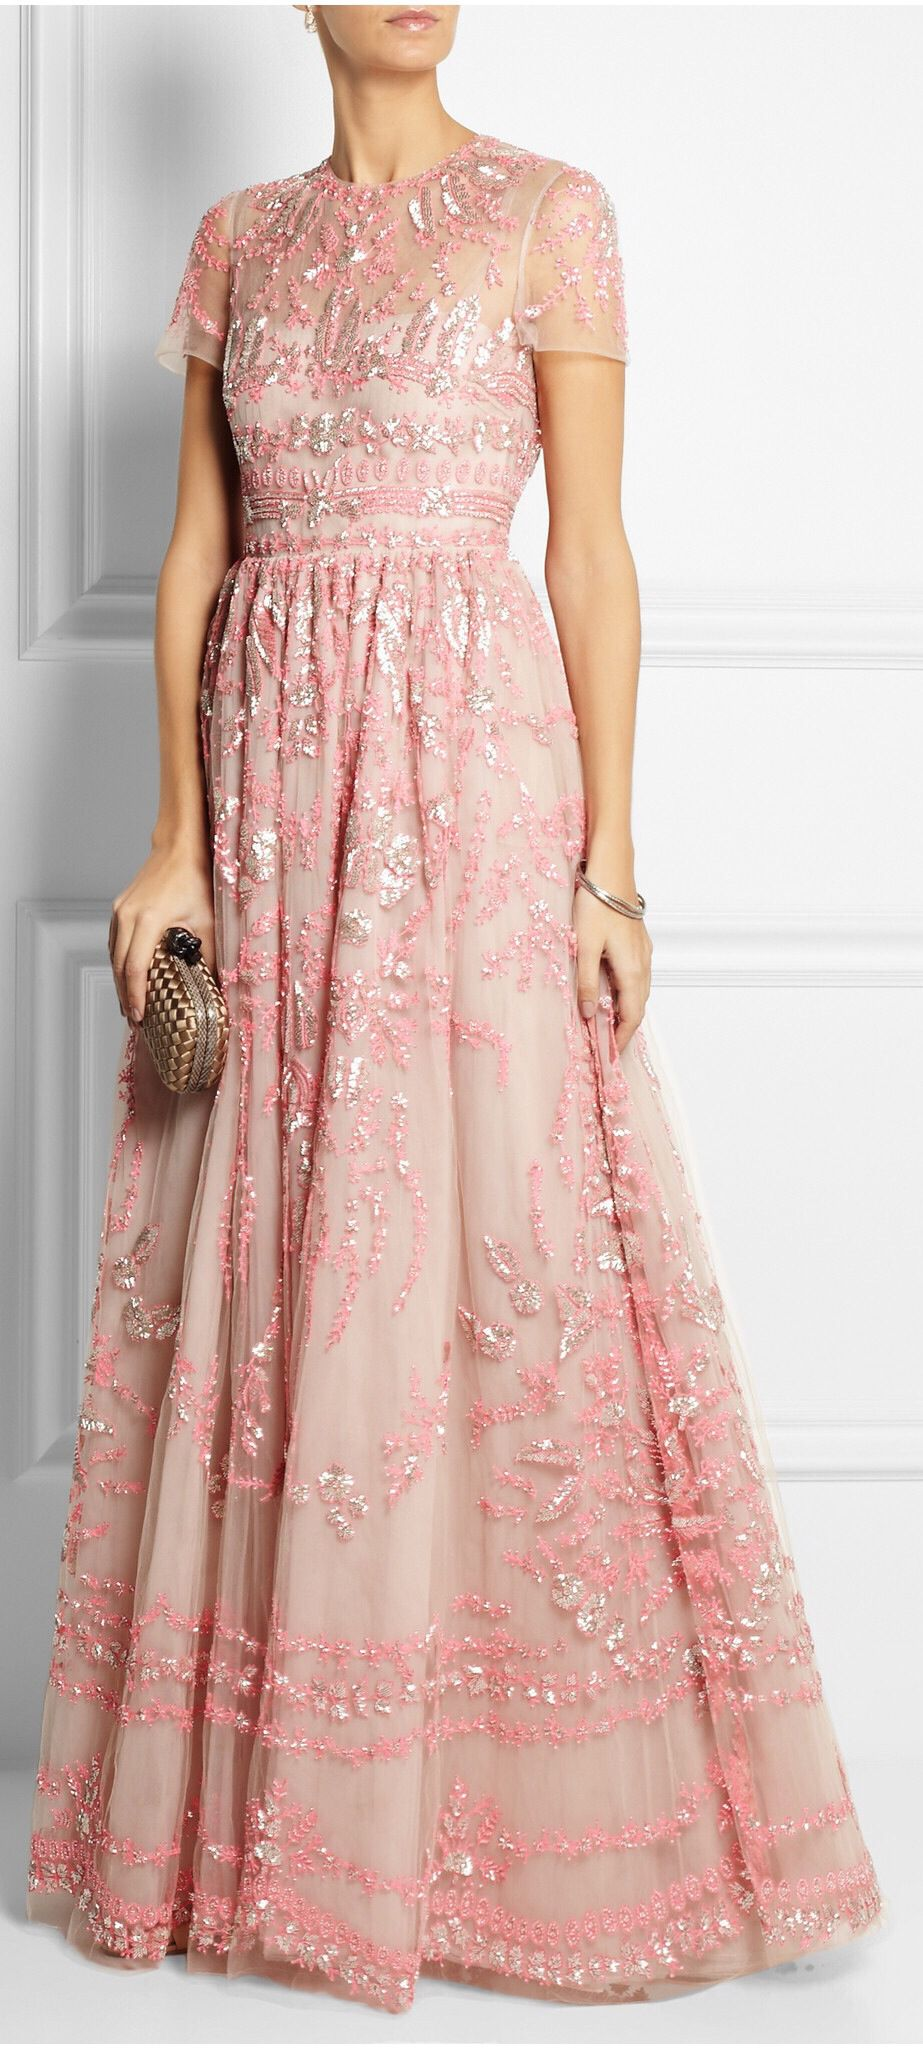 NWT VALENTINO RUNWAY Lace Tulle Embellished Pink Gown IT40 US4 ...